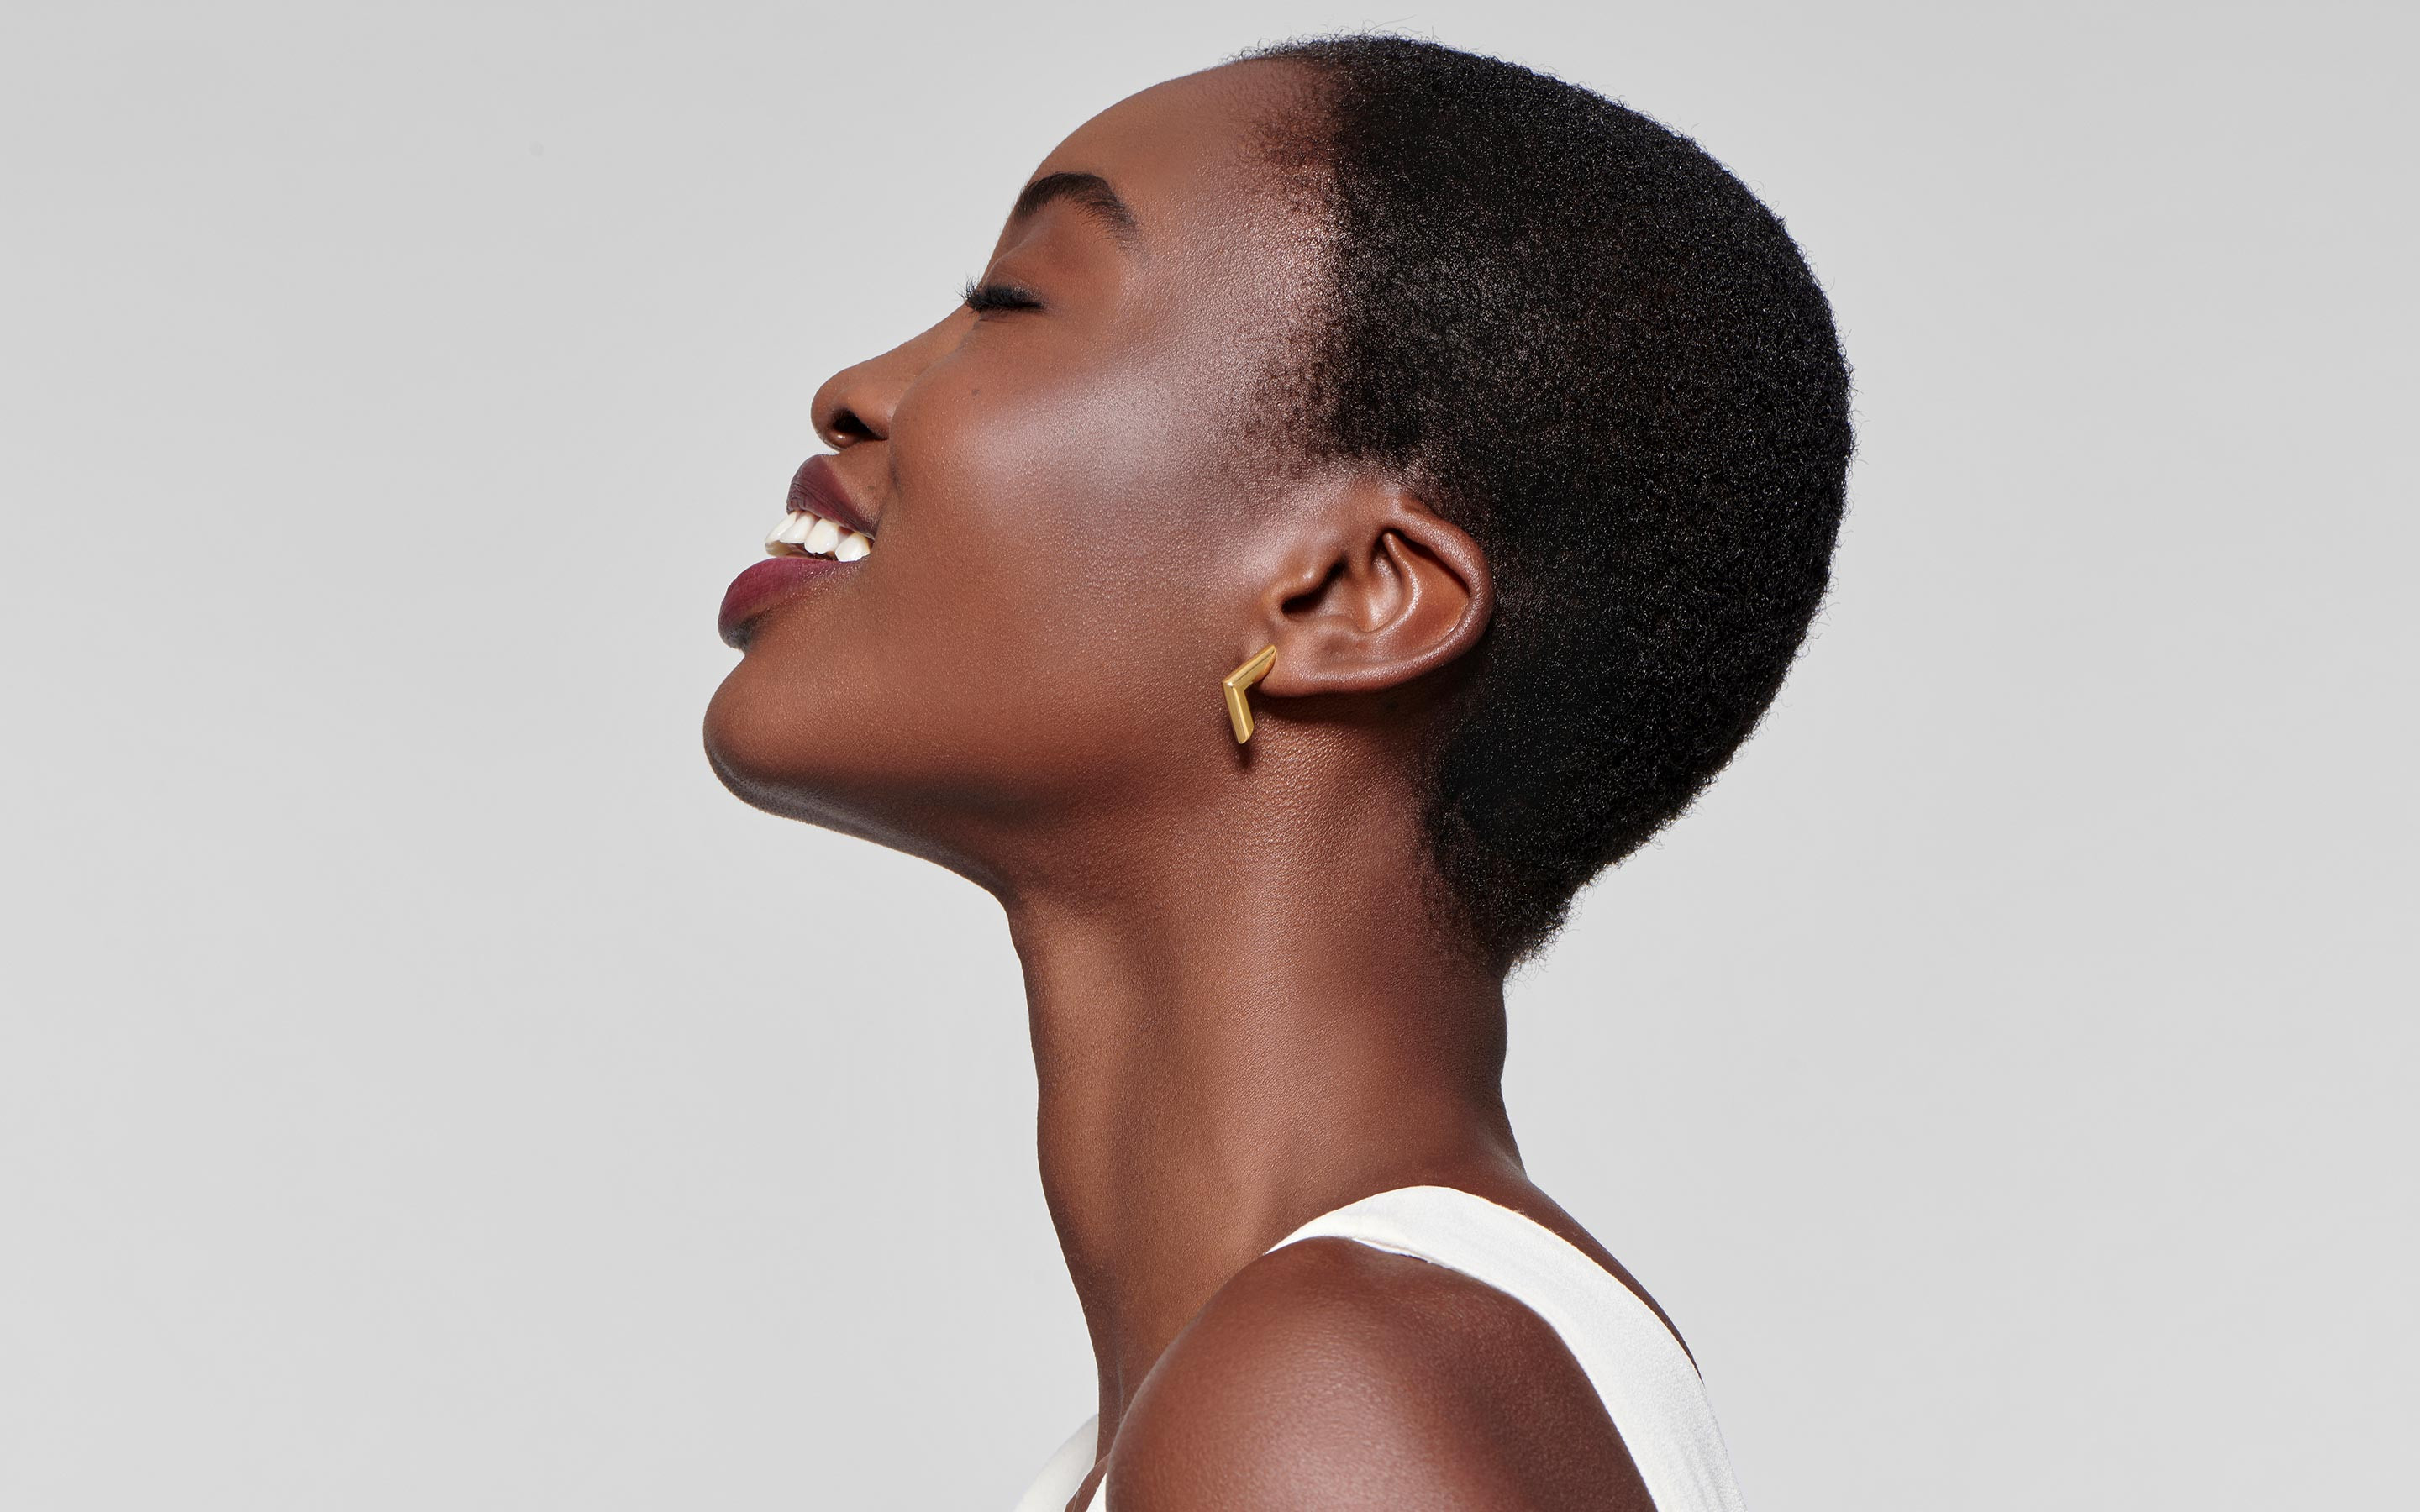 side shot of delighted black woman modeling pointed earrings made of 22 karat gold in polished finish